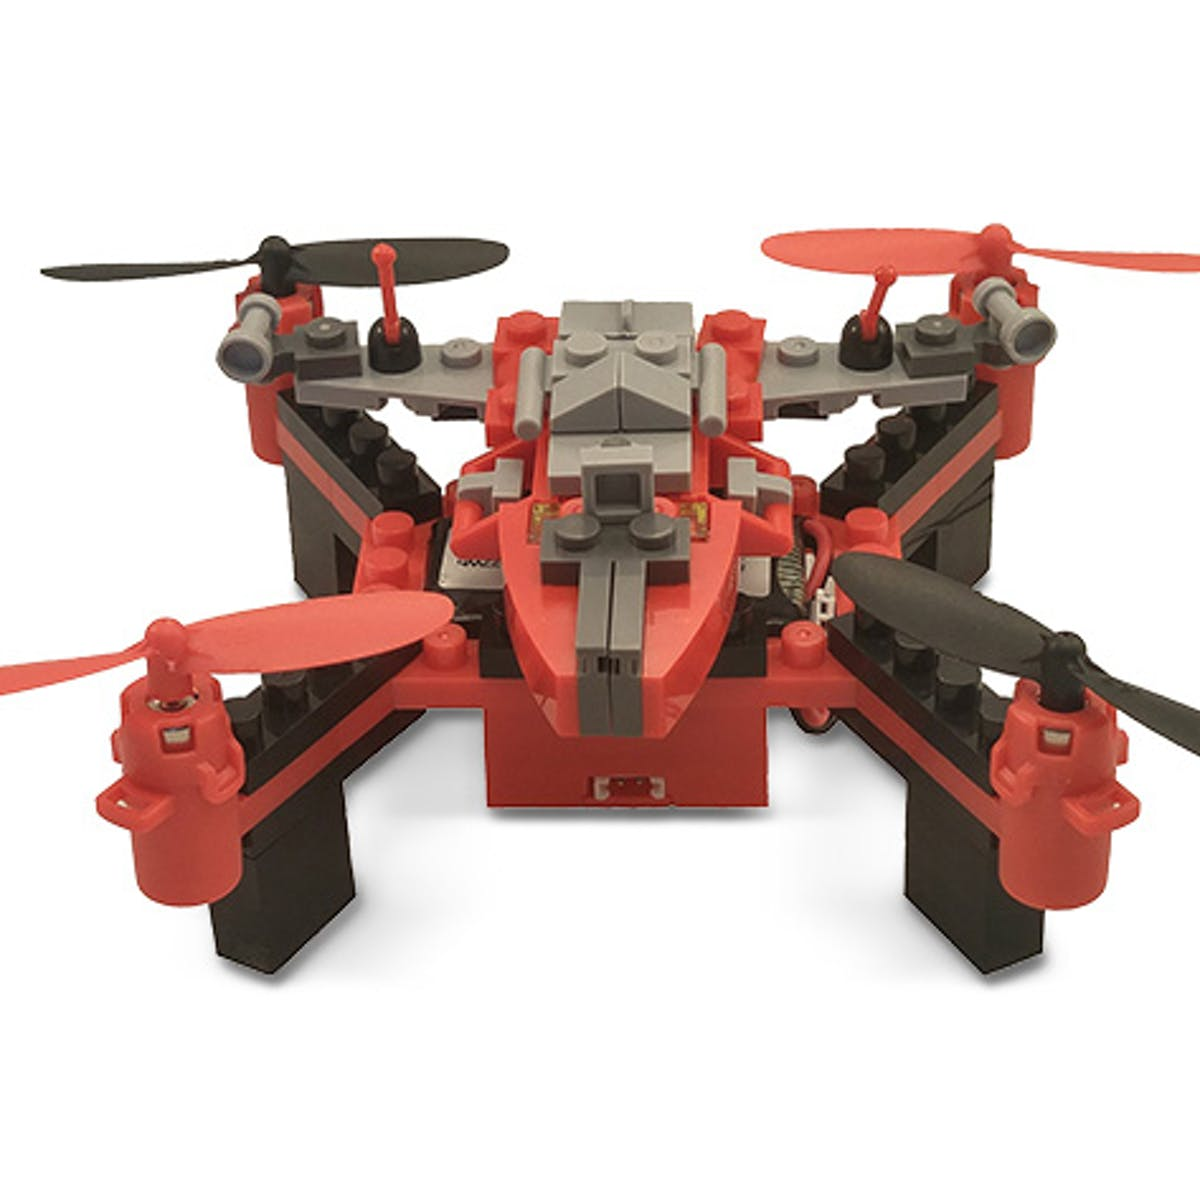 Build Your Own LEGO-Style Drone for Cheap